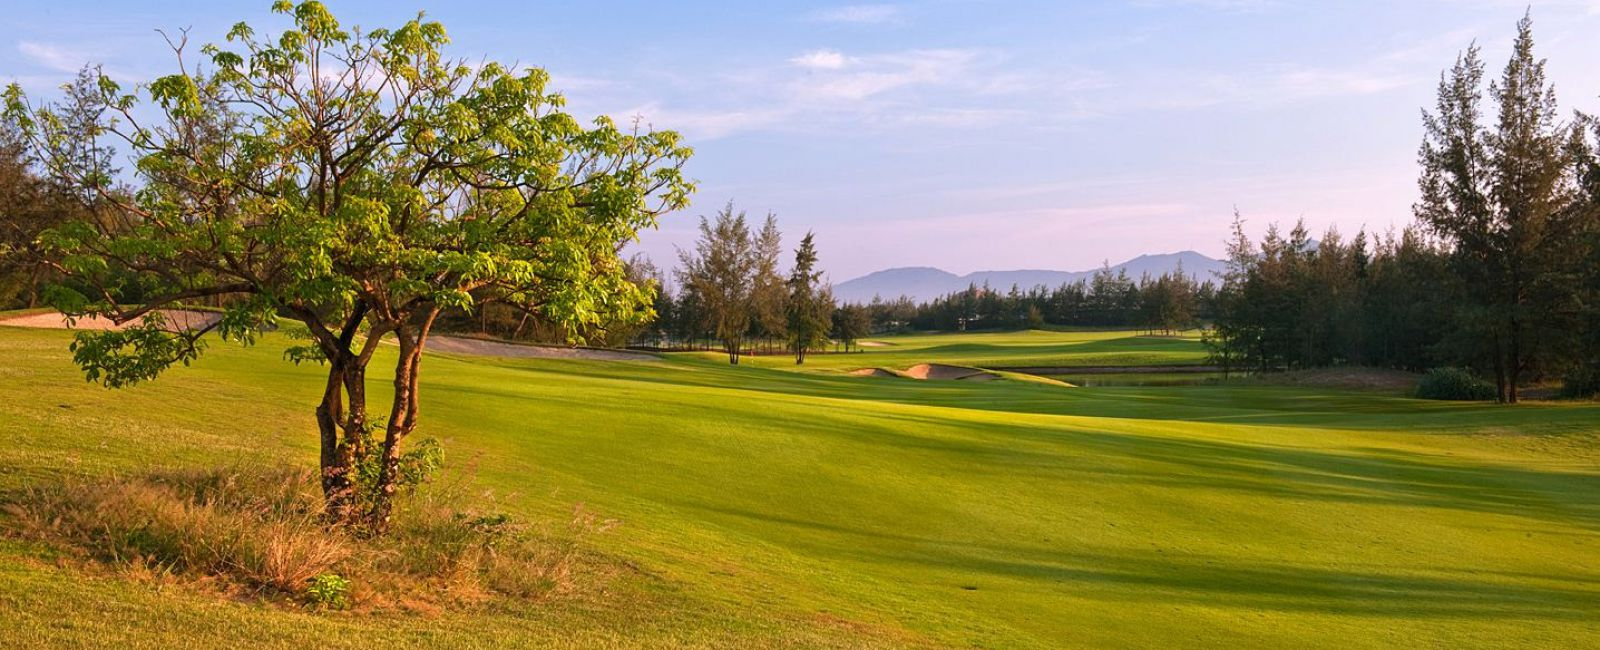 Danang Golf Package 3 Day 2 Nights and 2 Rounds